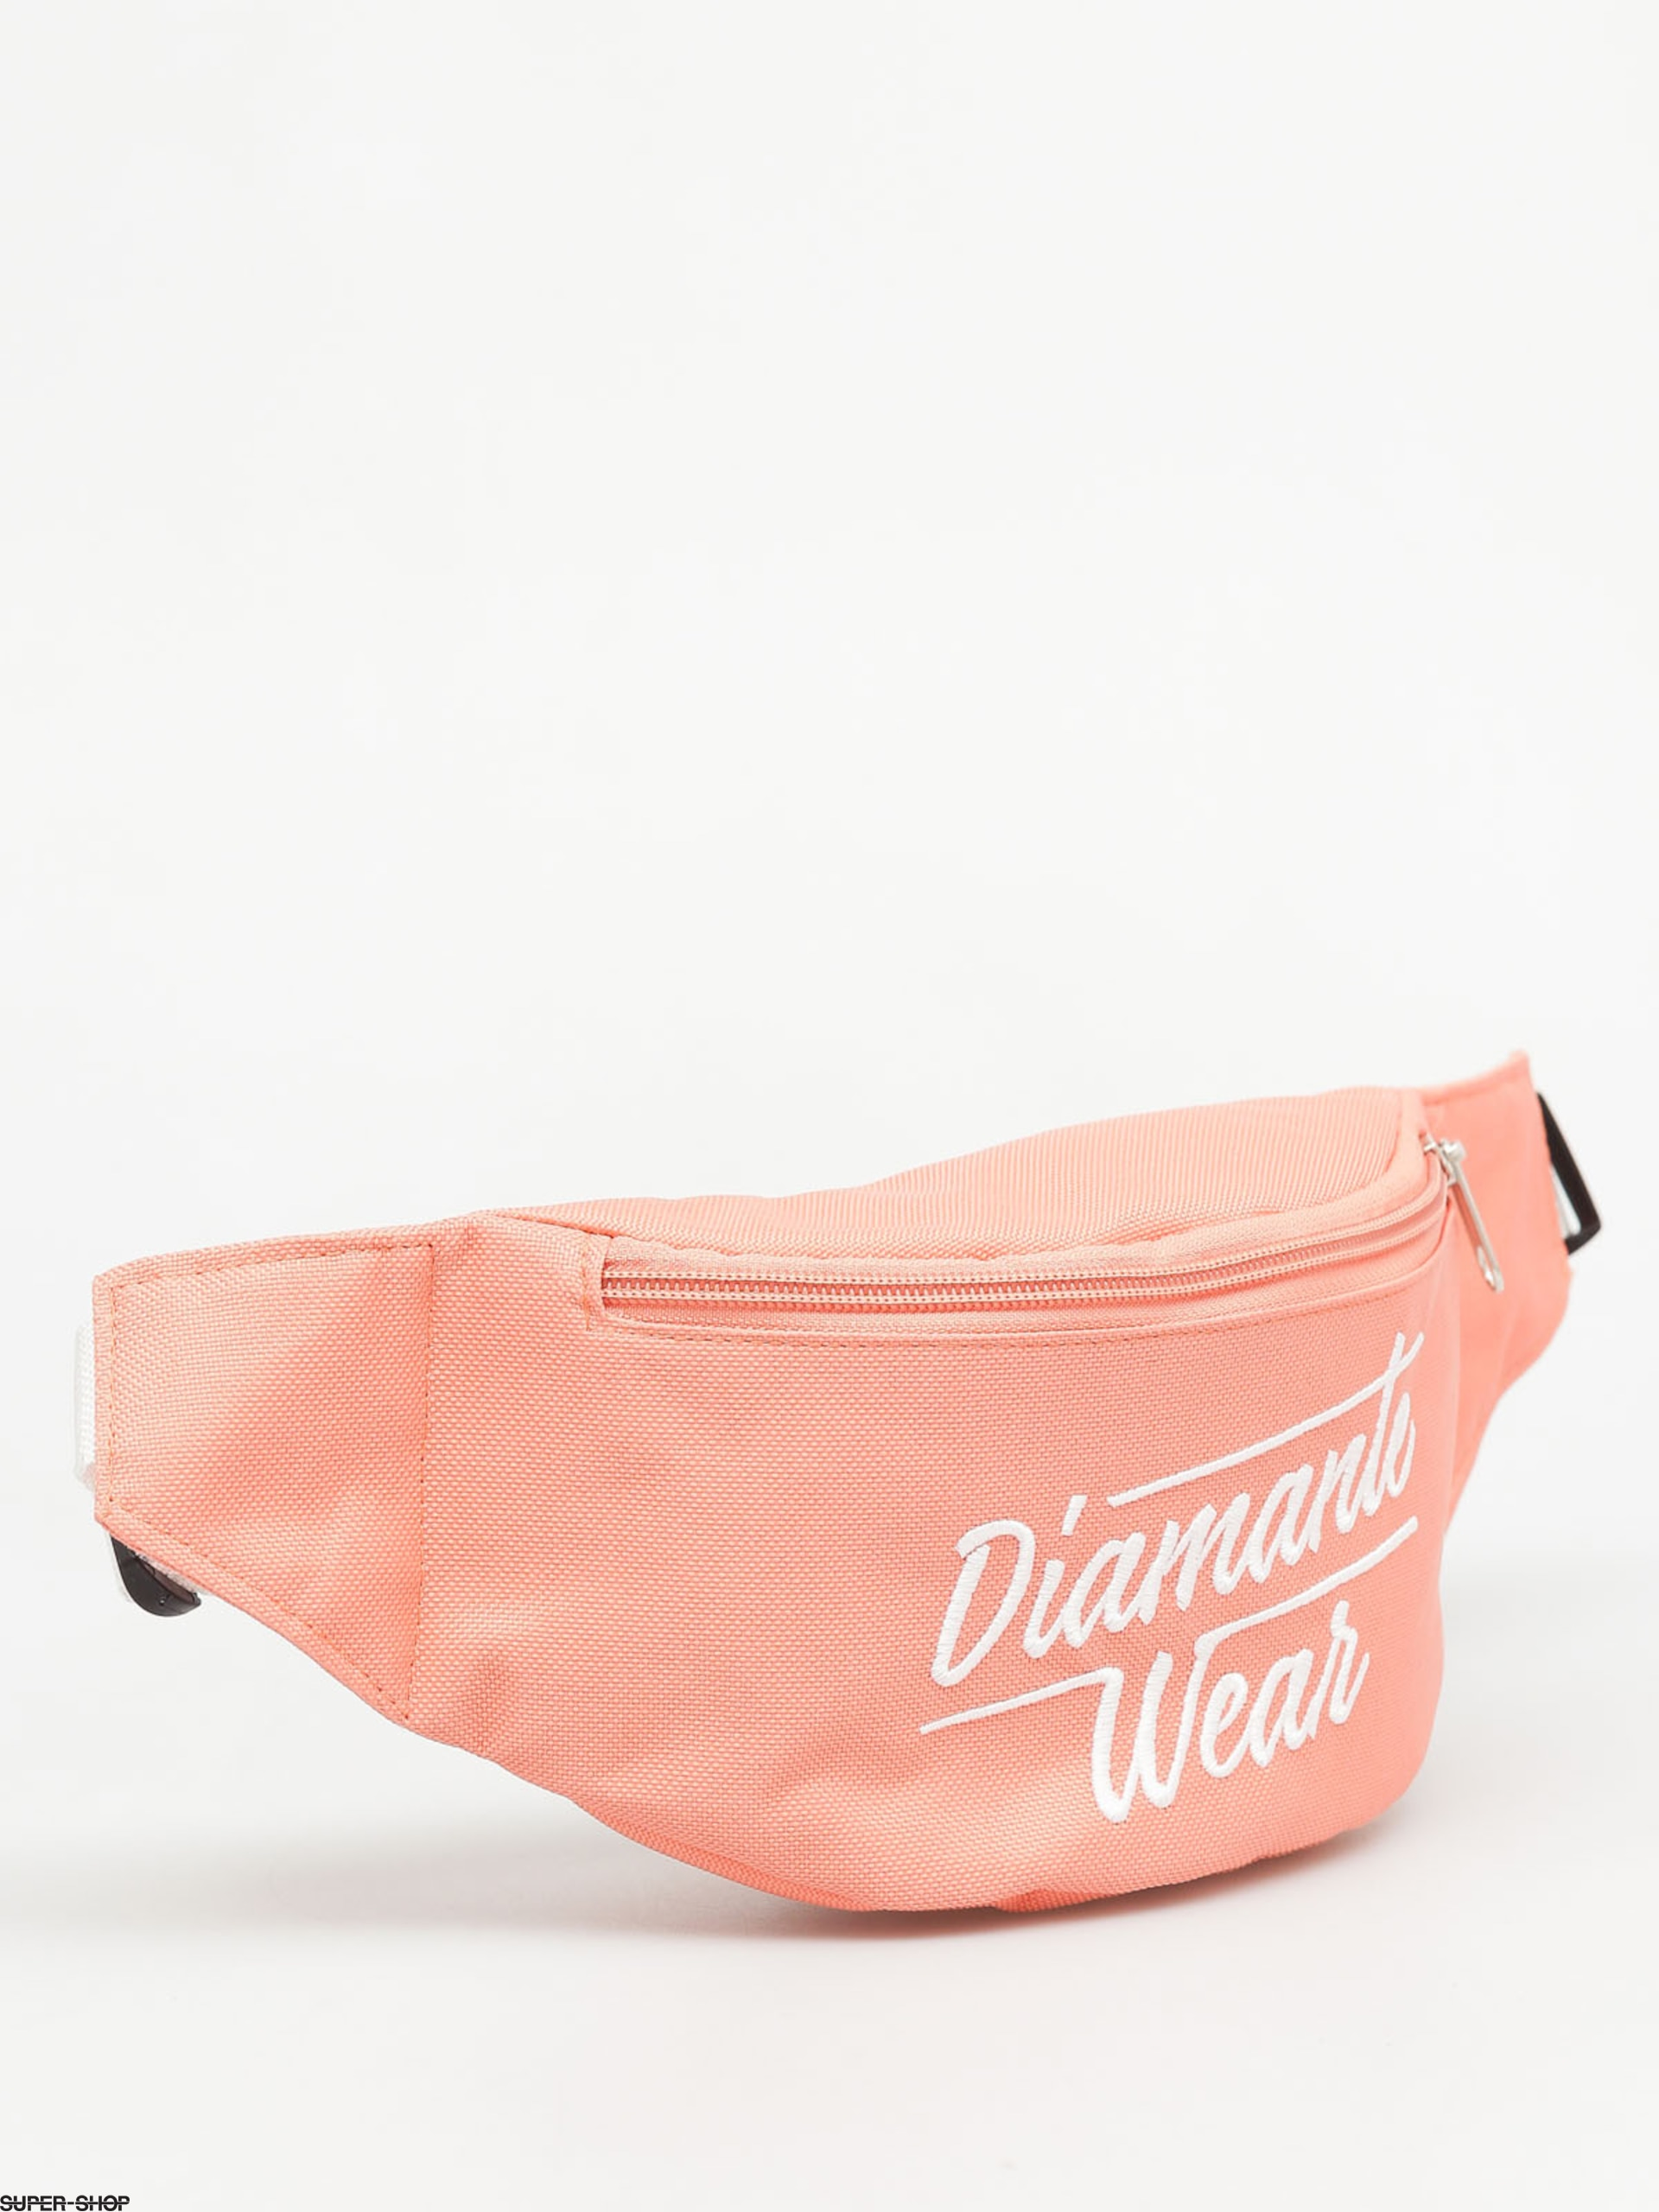 Diamante Wear Bum bag Big Logo (orange)